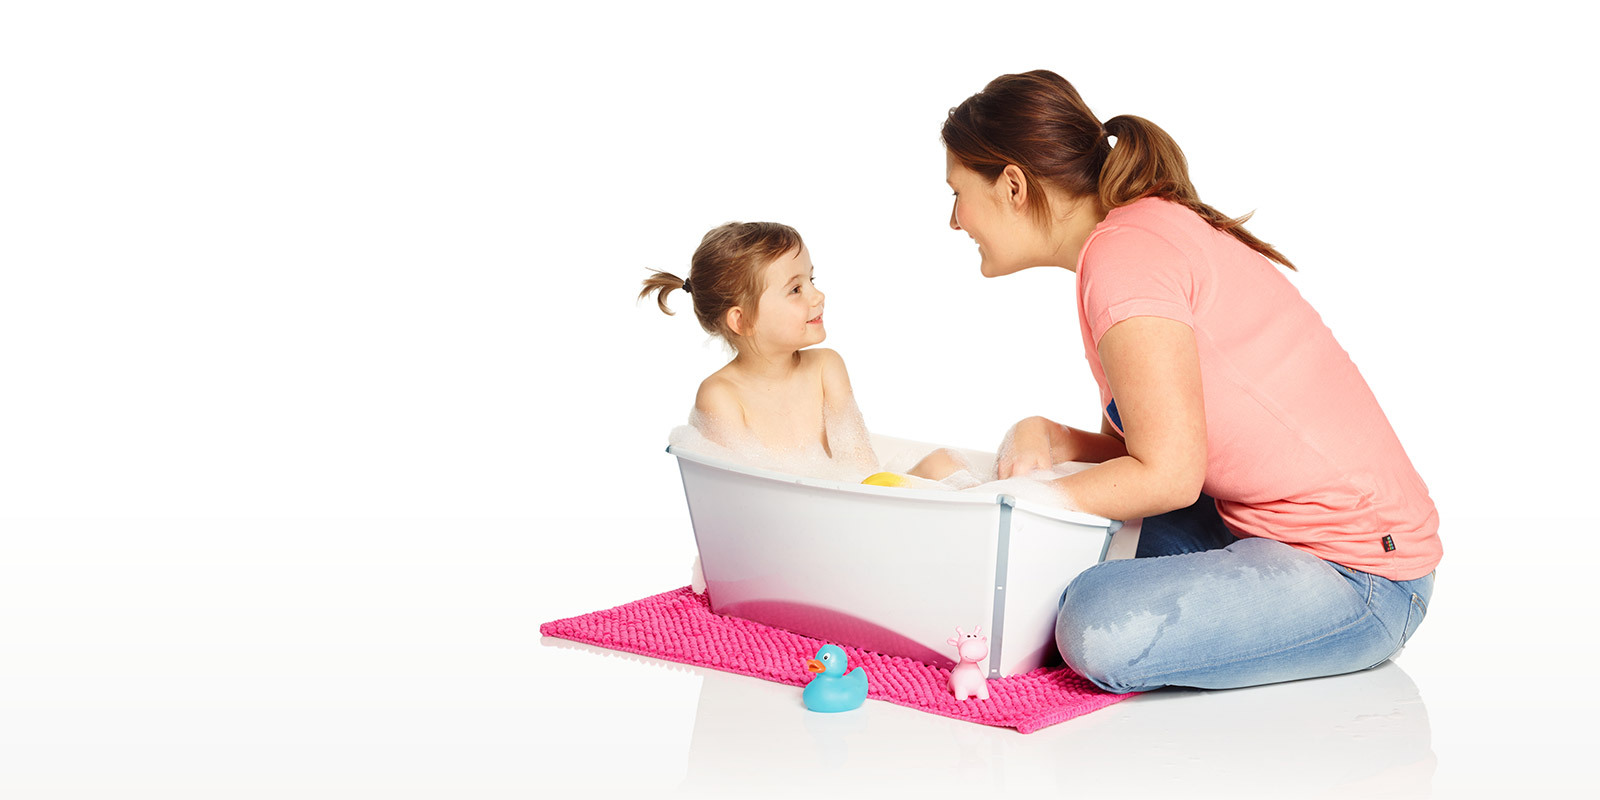 stokke flexi bath a flexible portable baby bath tub. Black Bedroom Furniture Sets. Home Design Ideas